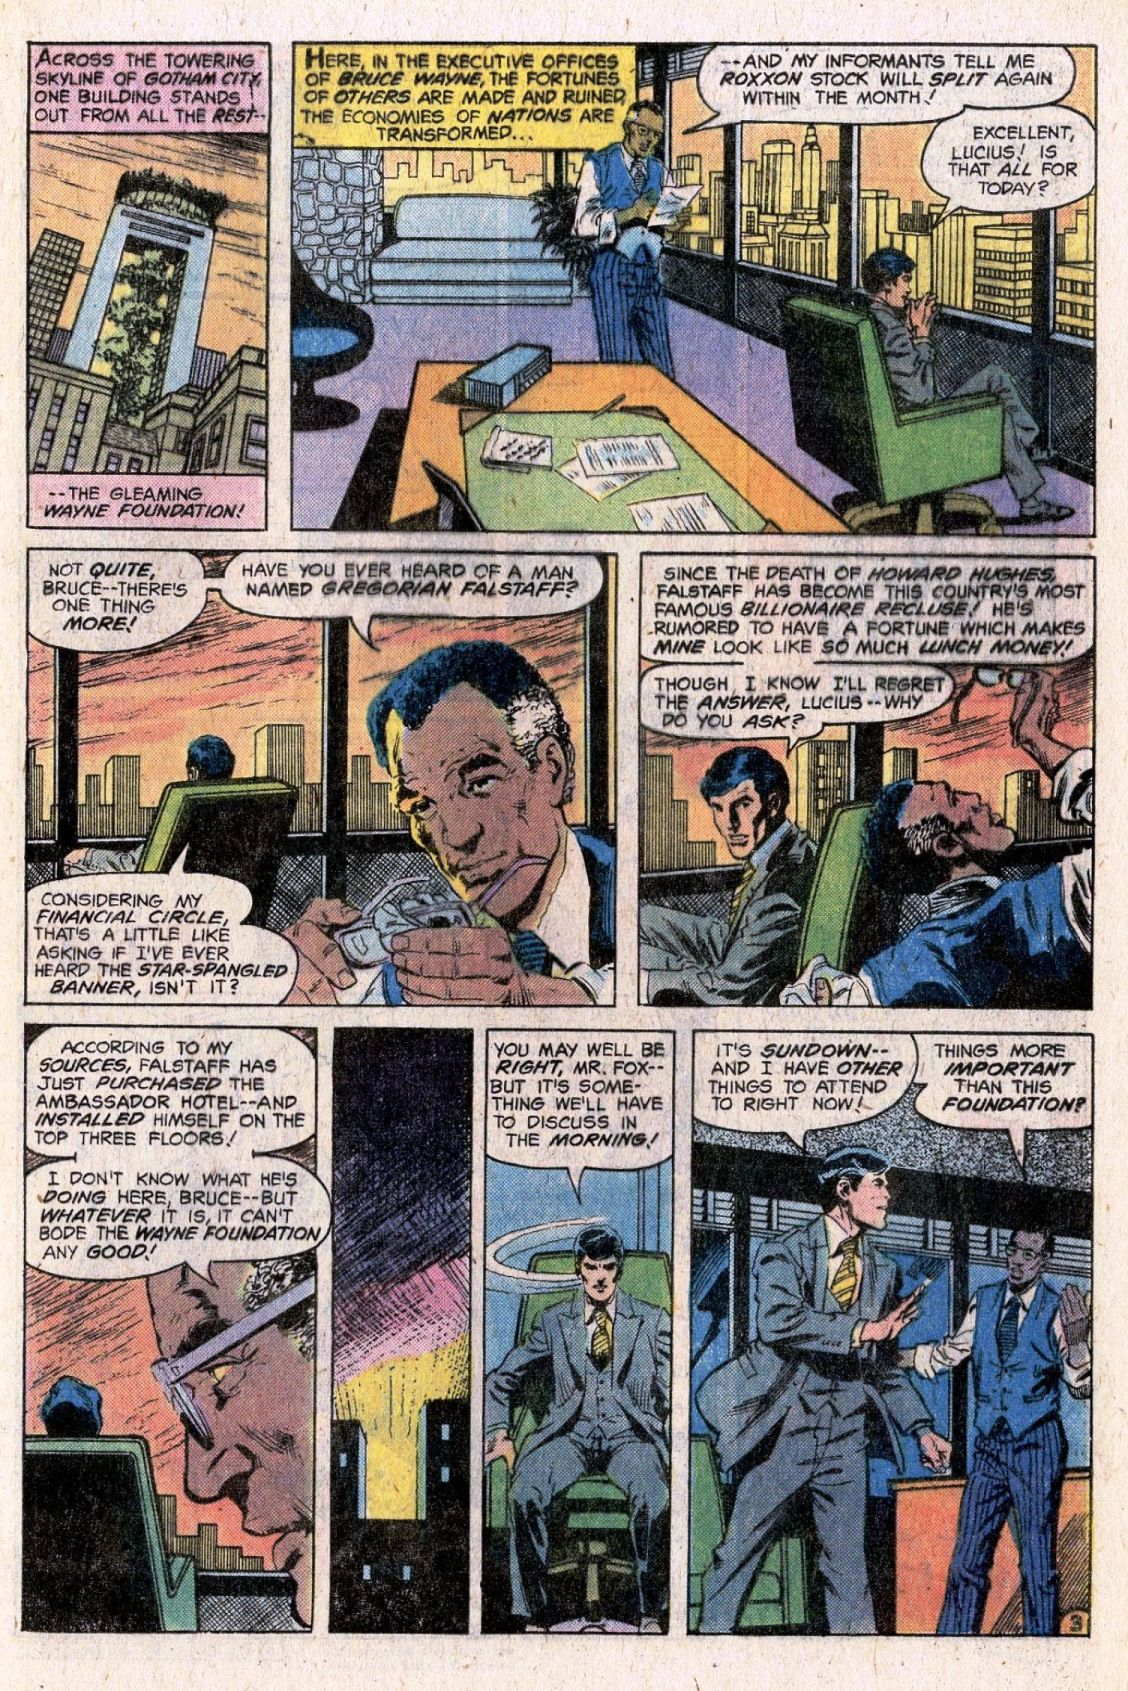 Batman (1940) #307 pg3, penciled by John Calnan & inked by Dick Giordano. The first appearance of  Lucius Fox .